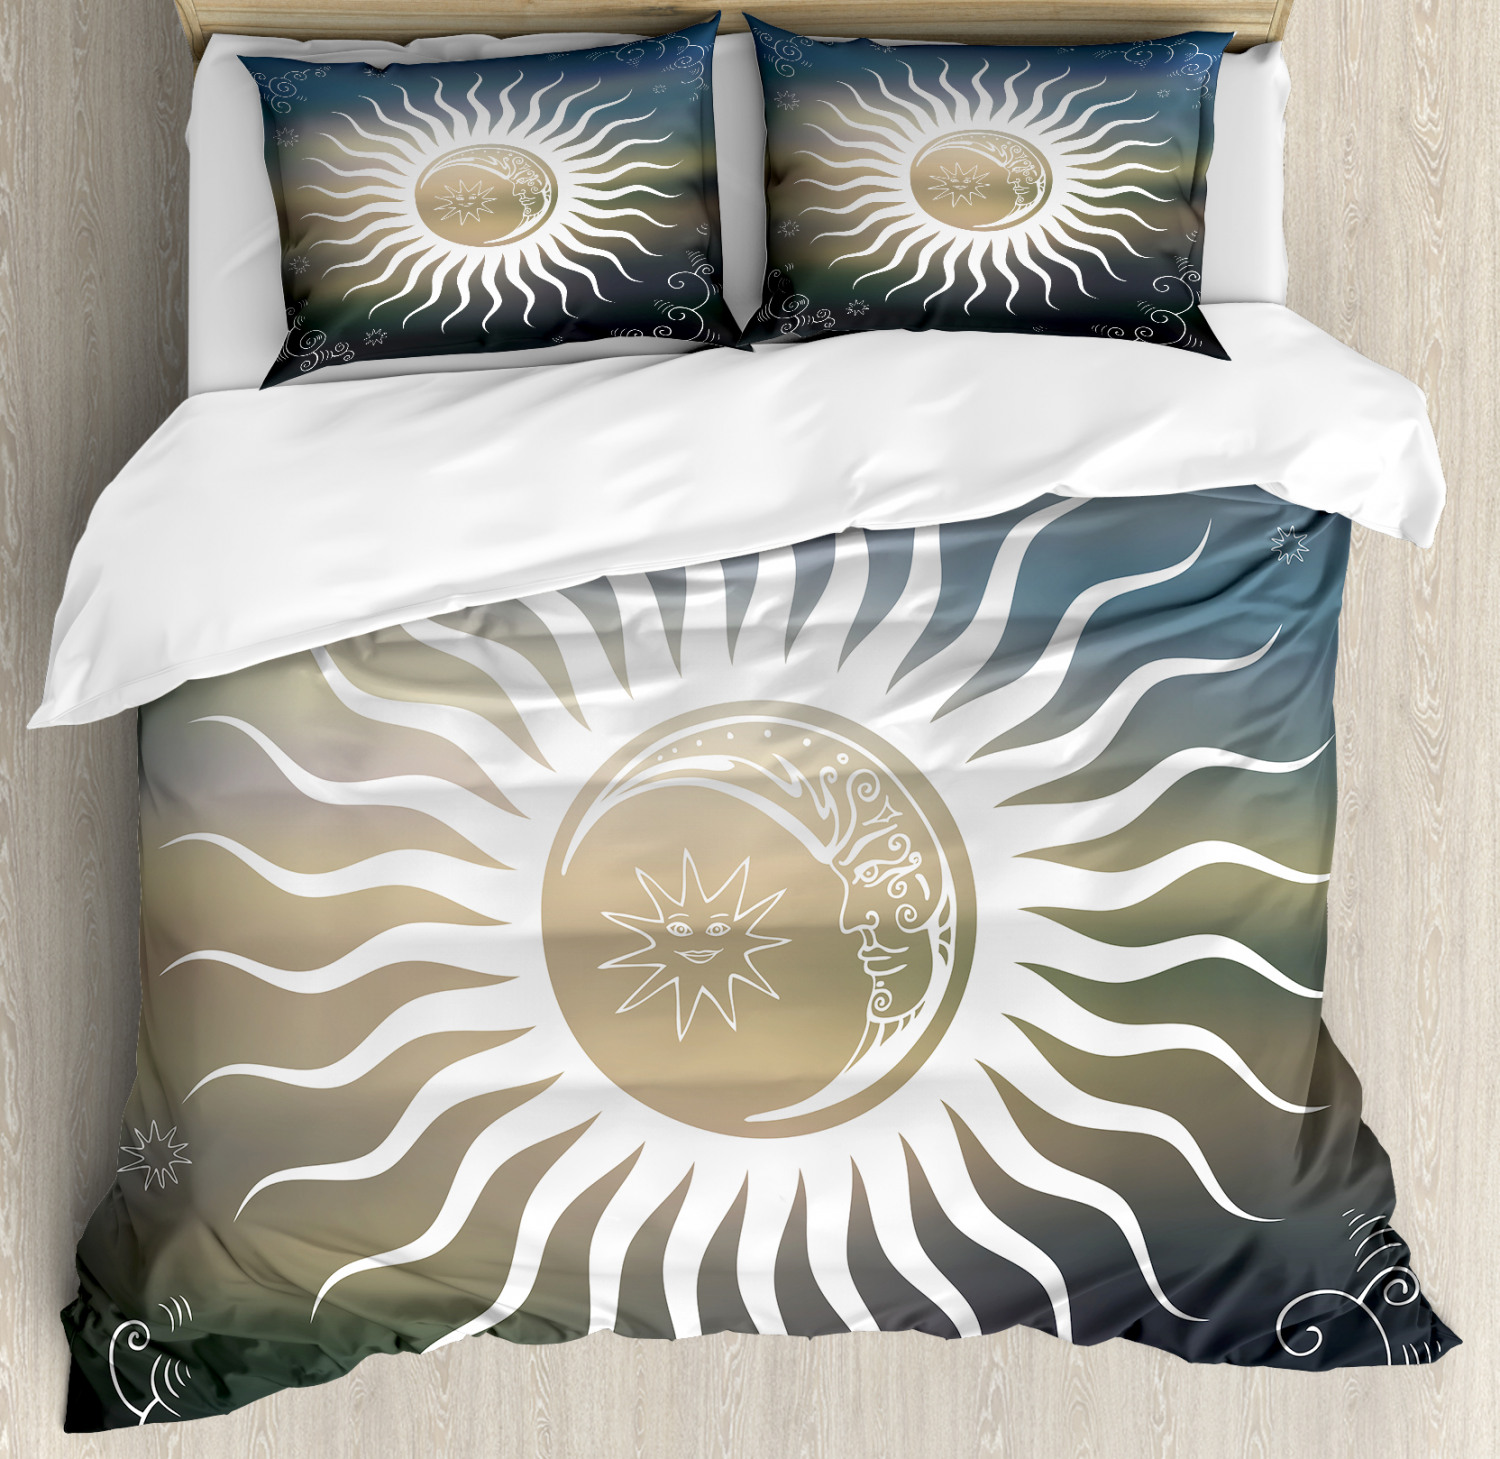 Sun Duvet Cover Set with Pillow Shams Celestial Body Silhoue